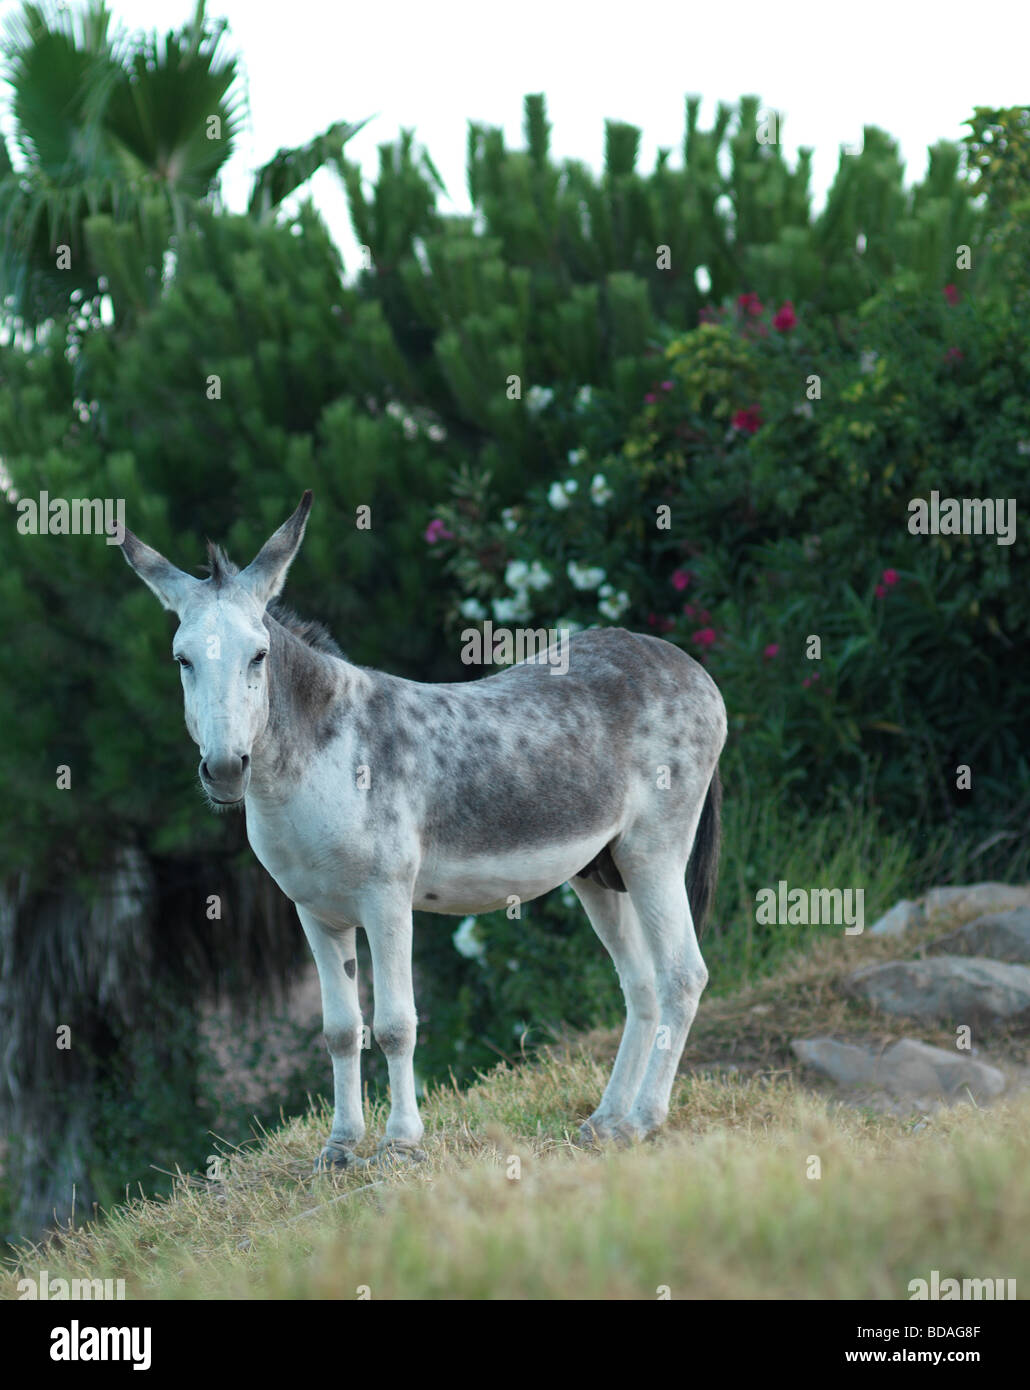 This grey donkey is pictured on August 7 2009 in Andalusia near by Tarifa in southern Spain. Stock Photo